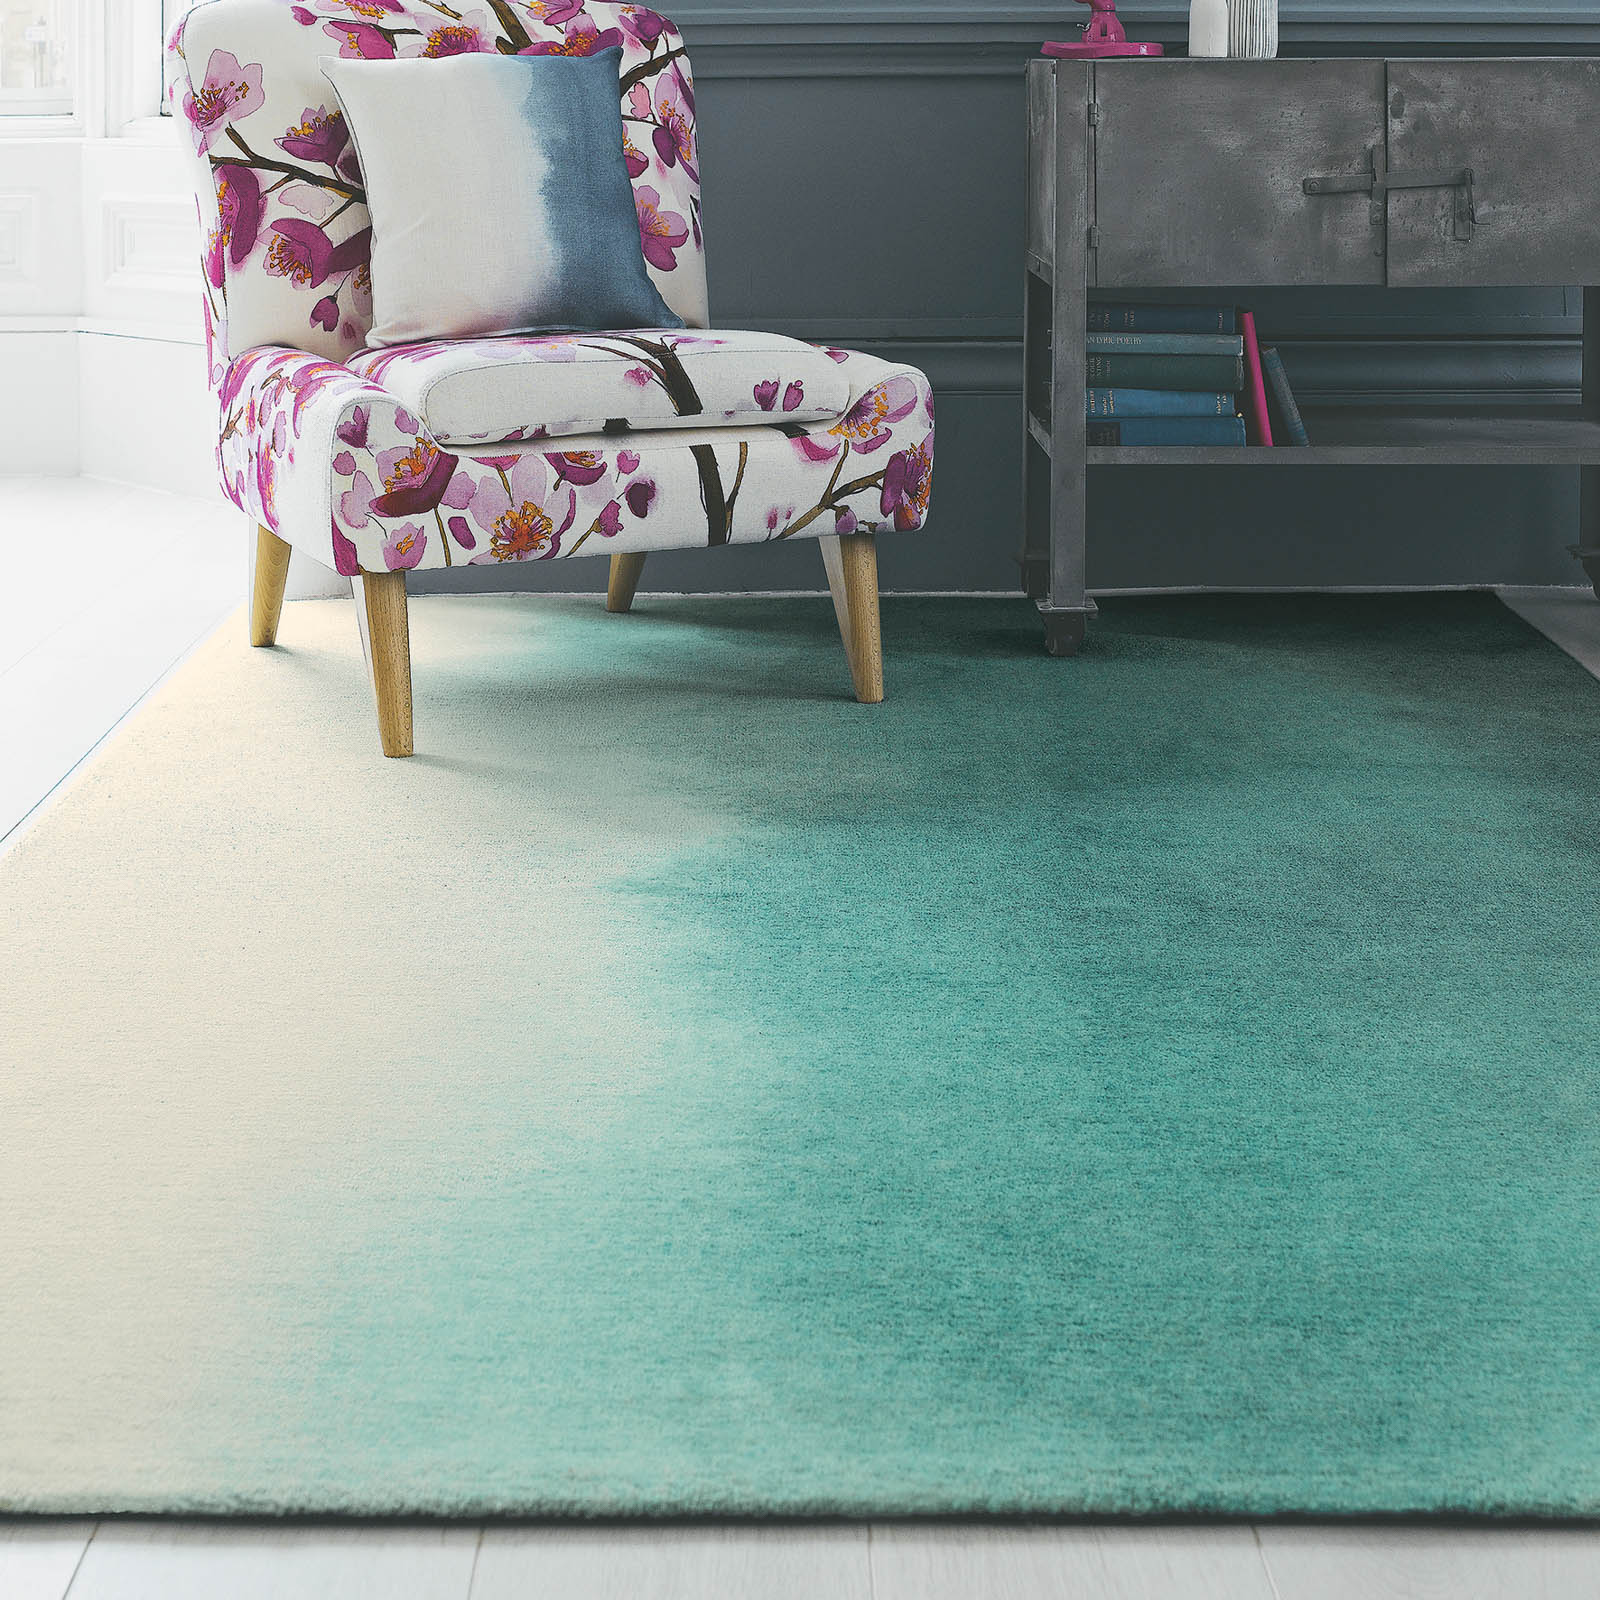 Paintbox Rugs 18207 by Bluebellgray in Teal